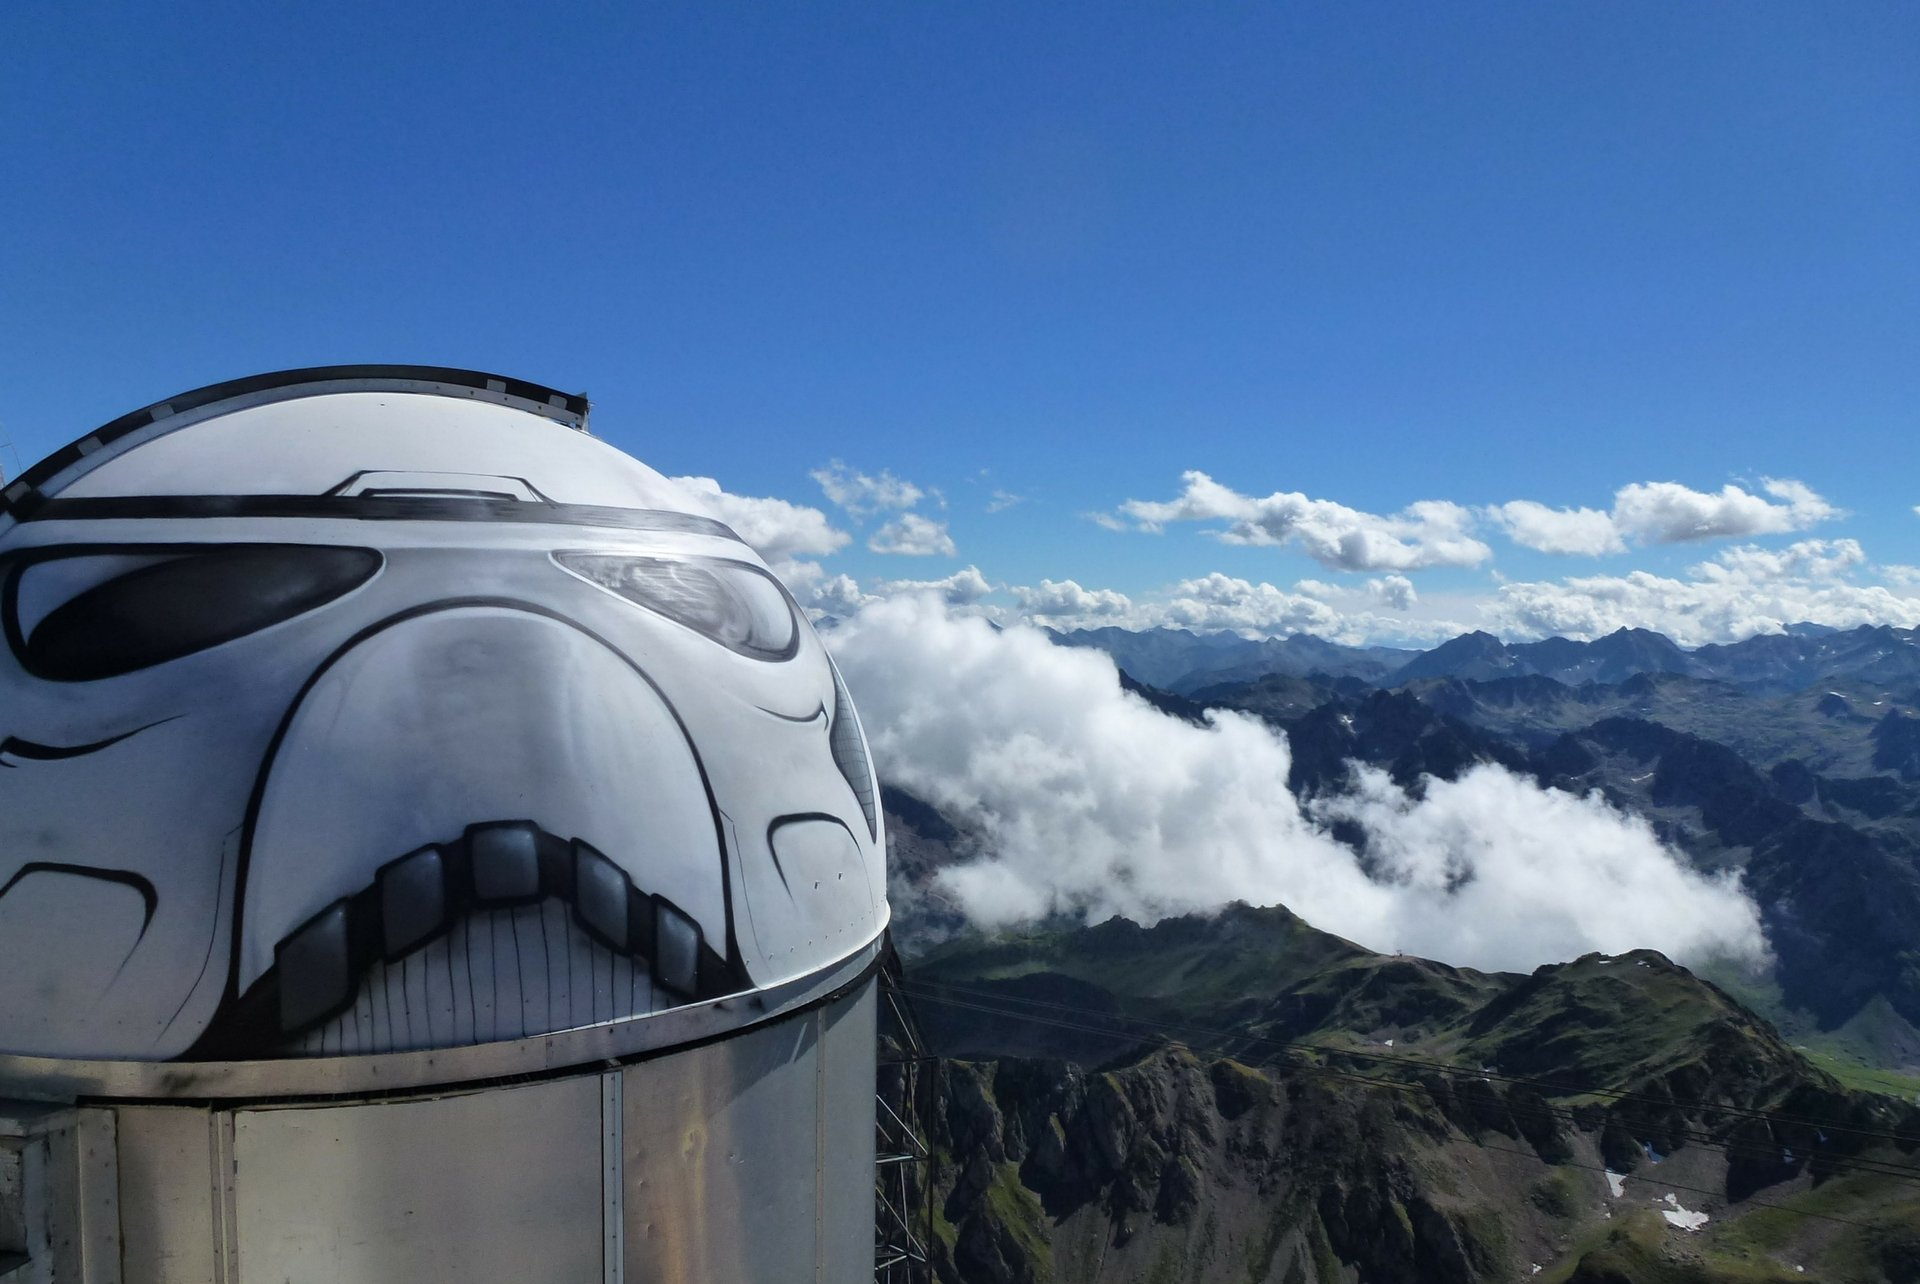 Mashable – There's a Stormtrooper on top of a mountain in France